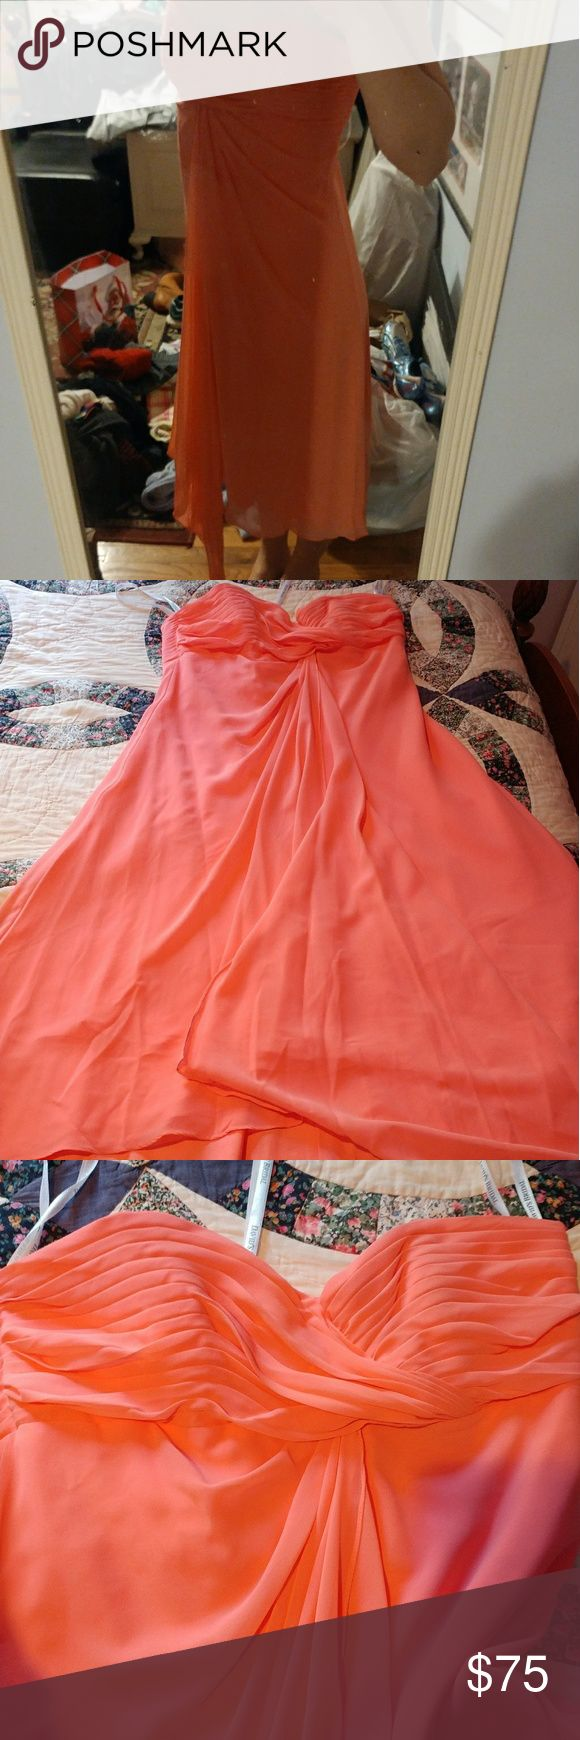 Salmon Bridesmaid's dress This is a beautiful dress from David's Bridal. It was worn once to a high school prom but has no staining or flaws. Flowy and strapless.  There is no size on the dress. It fits like a large/extra large. I am happy to take measurments for those who inquire. David's Bridal Dresses Strapless